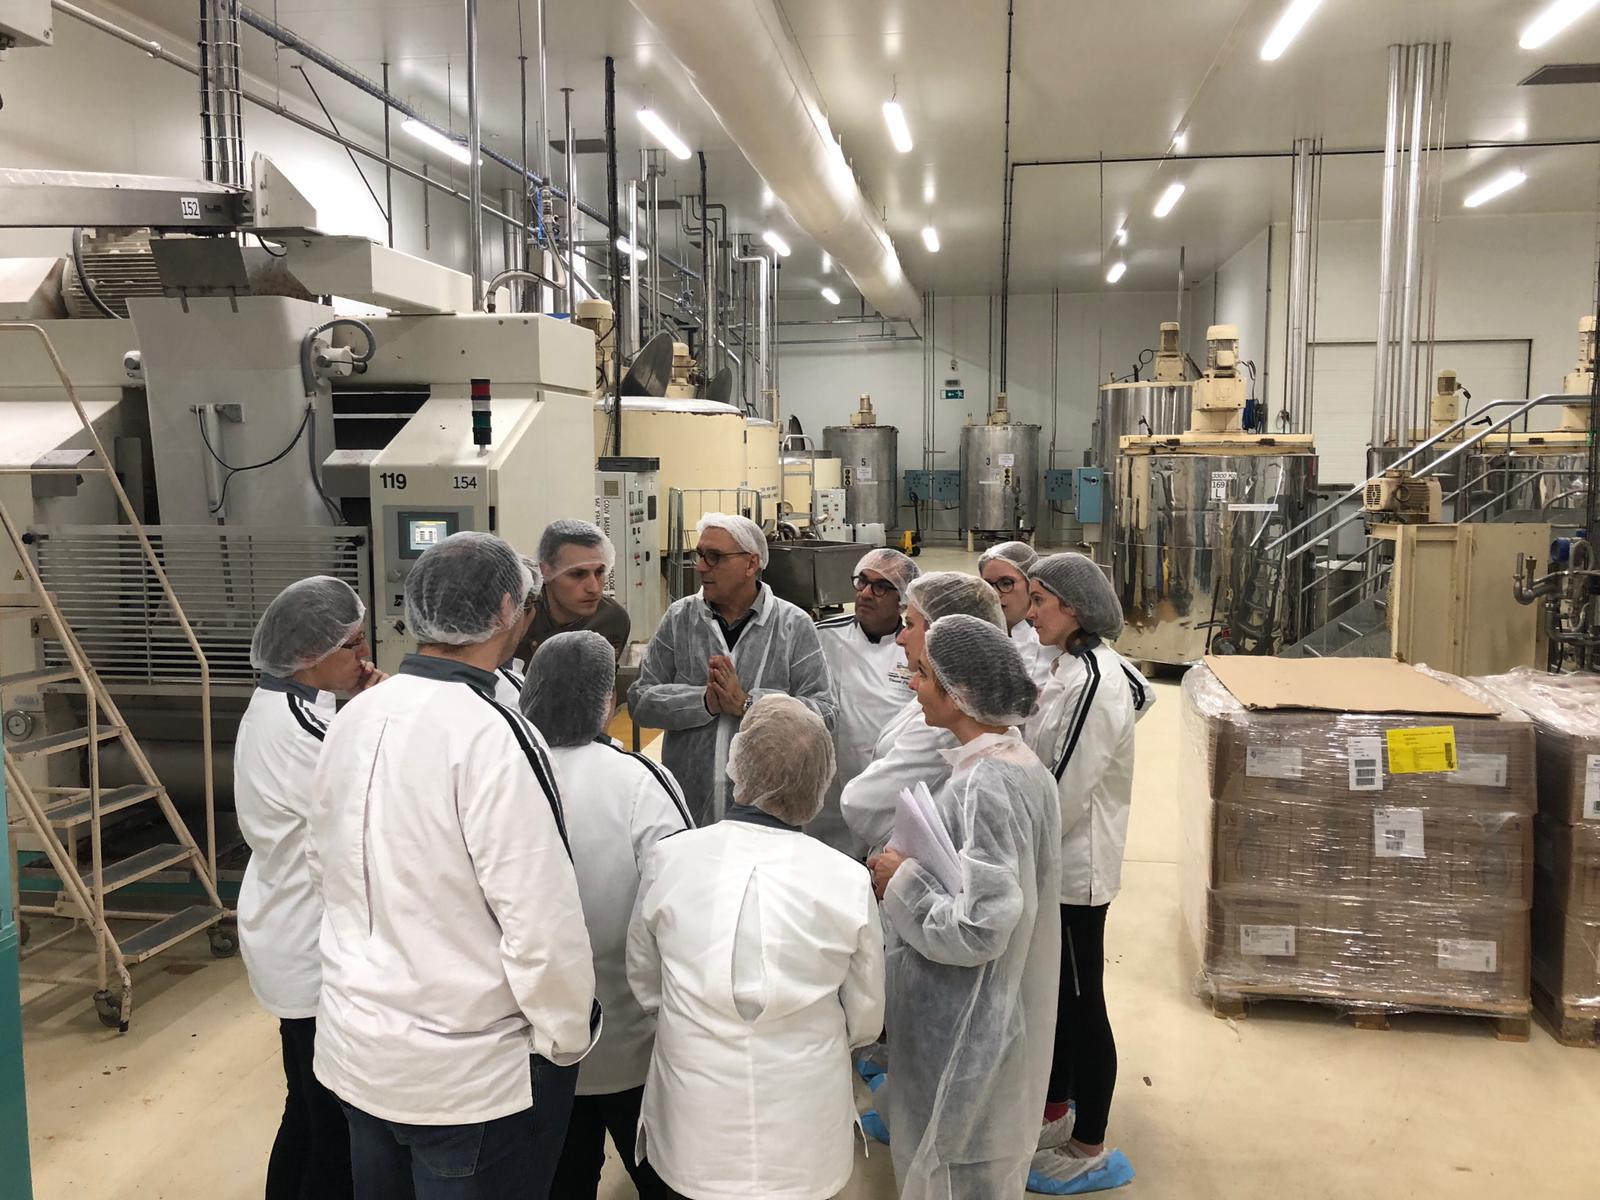 Visite chocolaterie Weiss